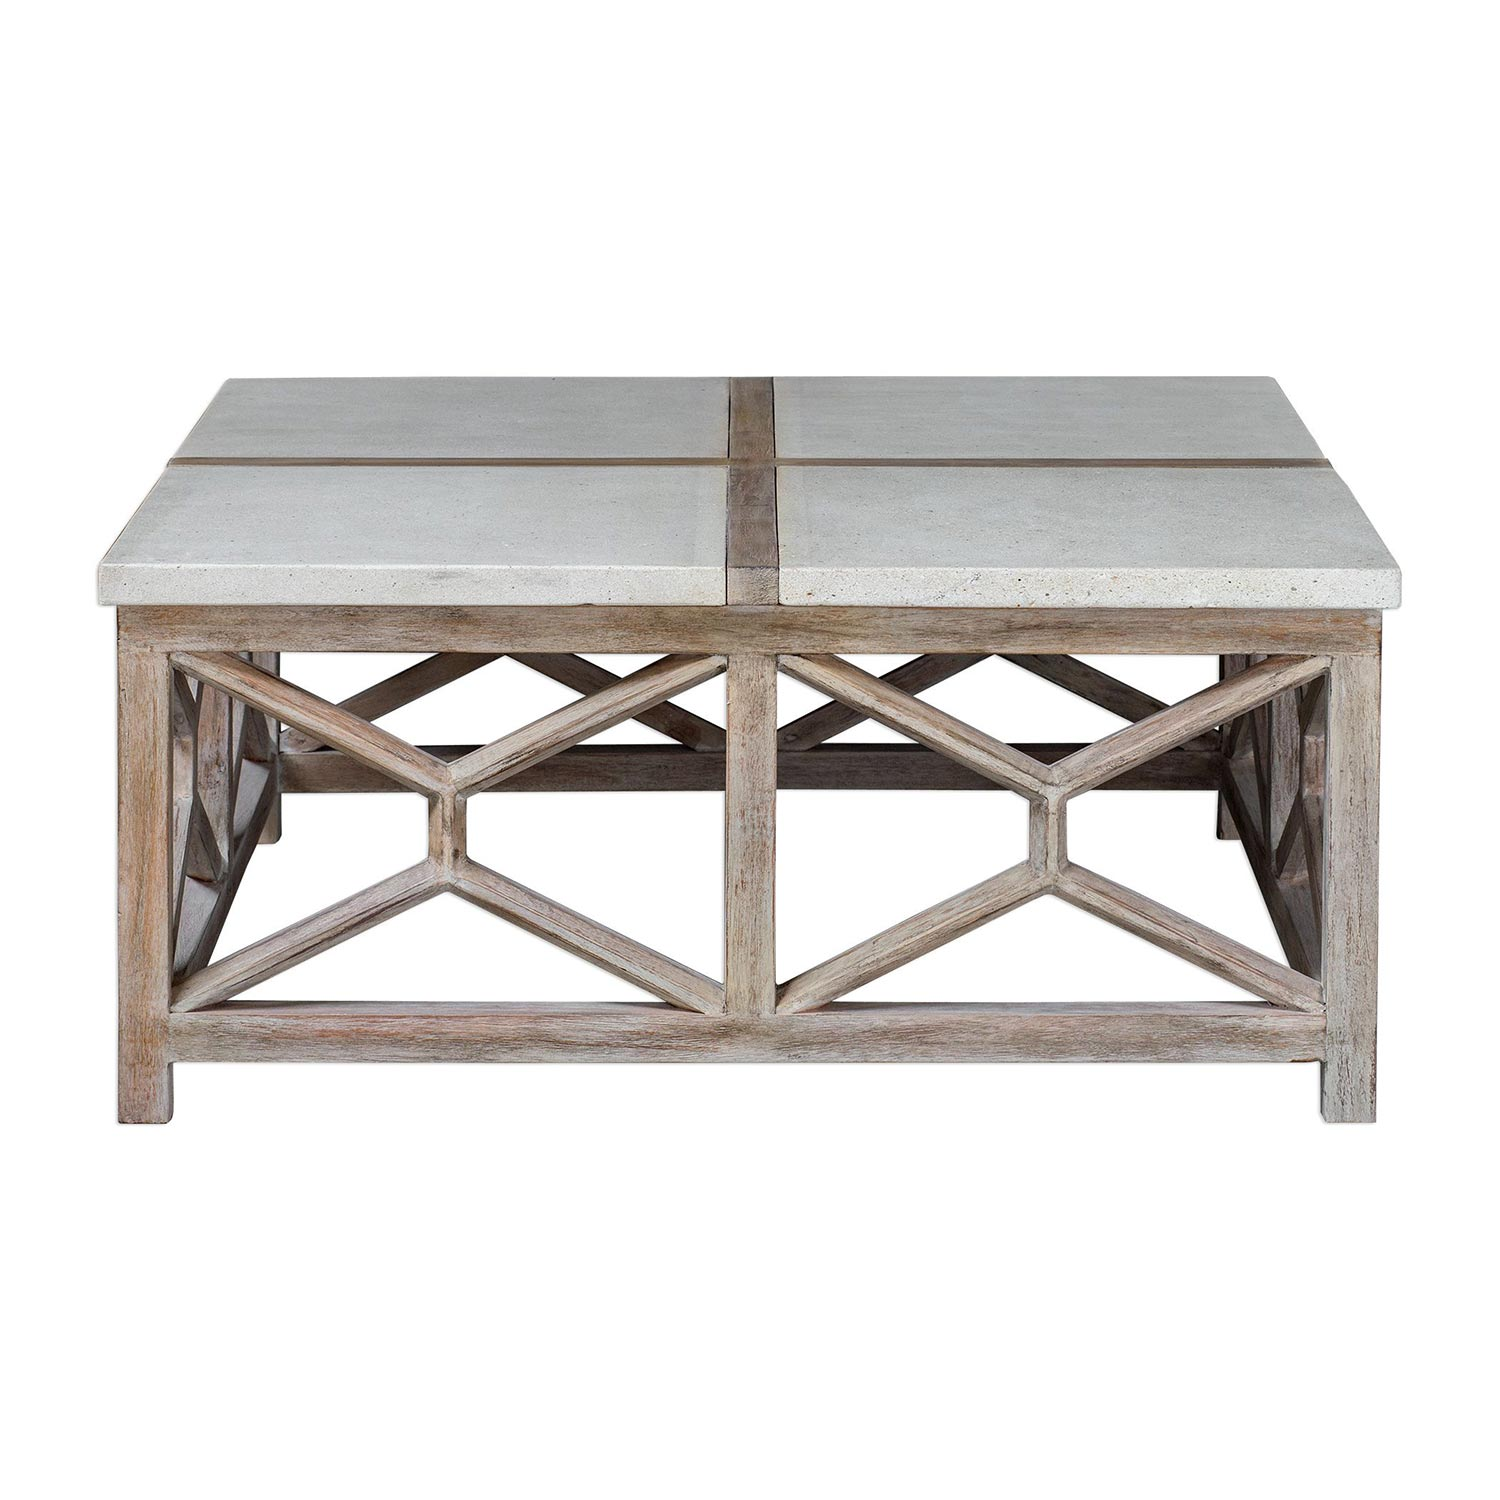 Uttermost Catali Coffee Table - Stone